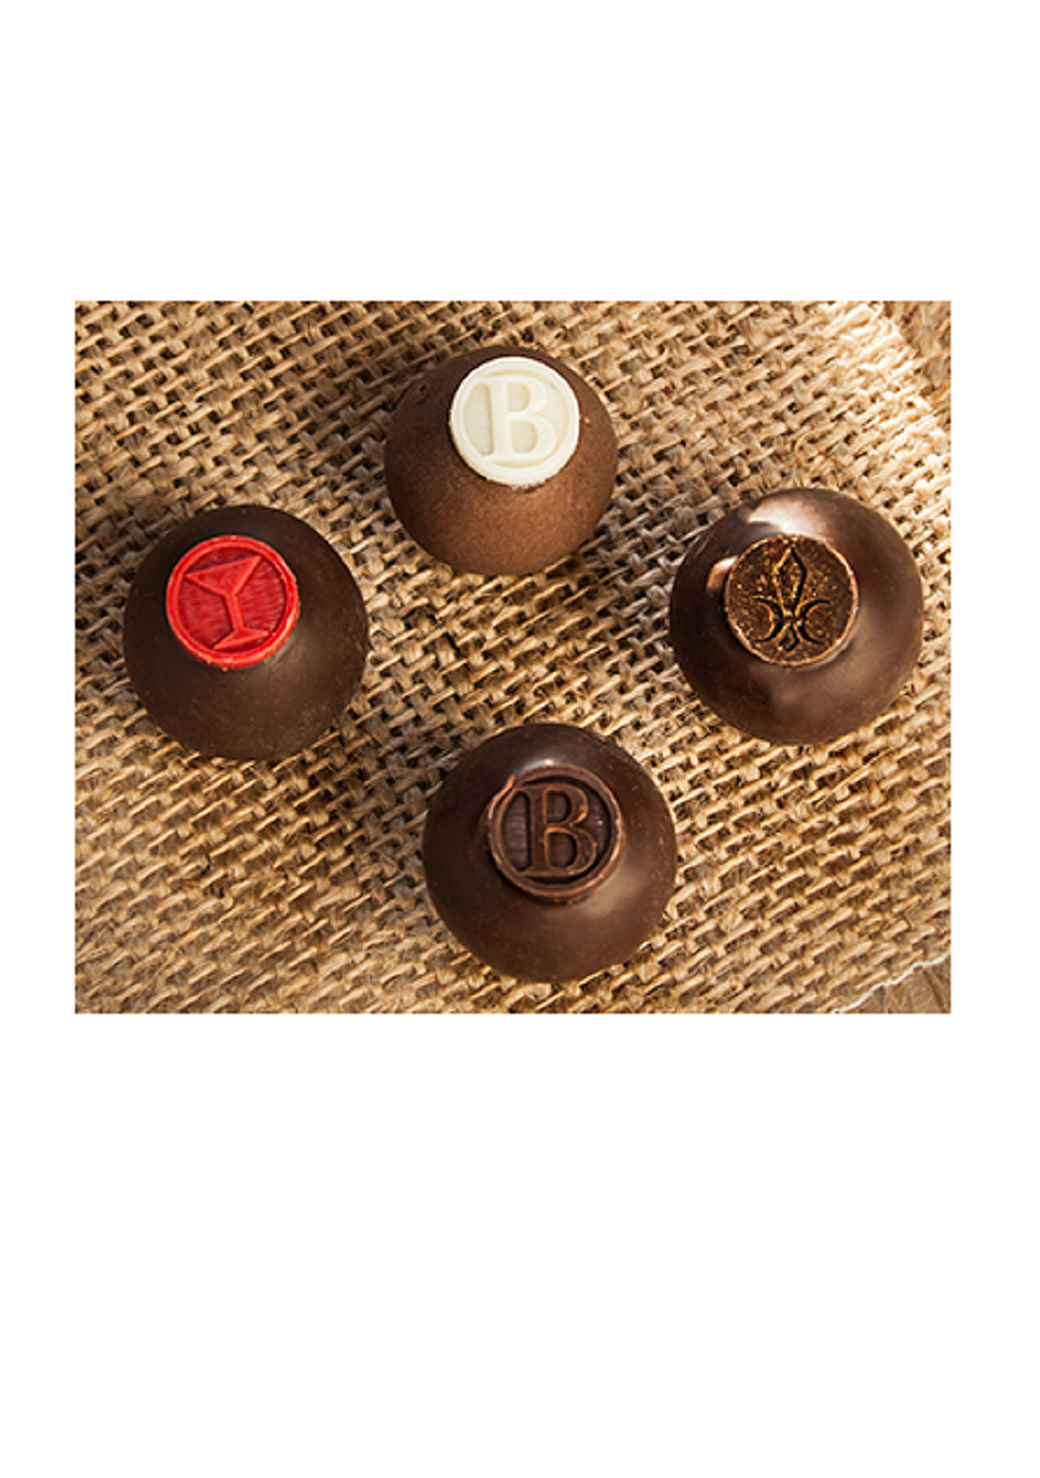 Art-Eatables-Bourbon-Truffles-2-vs2.png (skyword:223207)